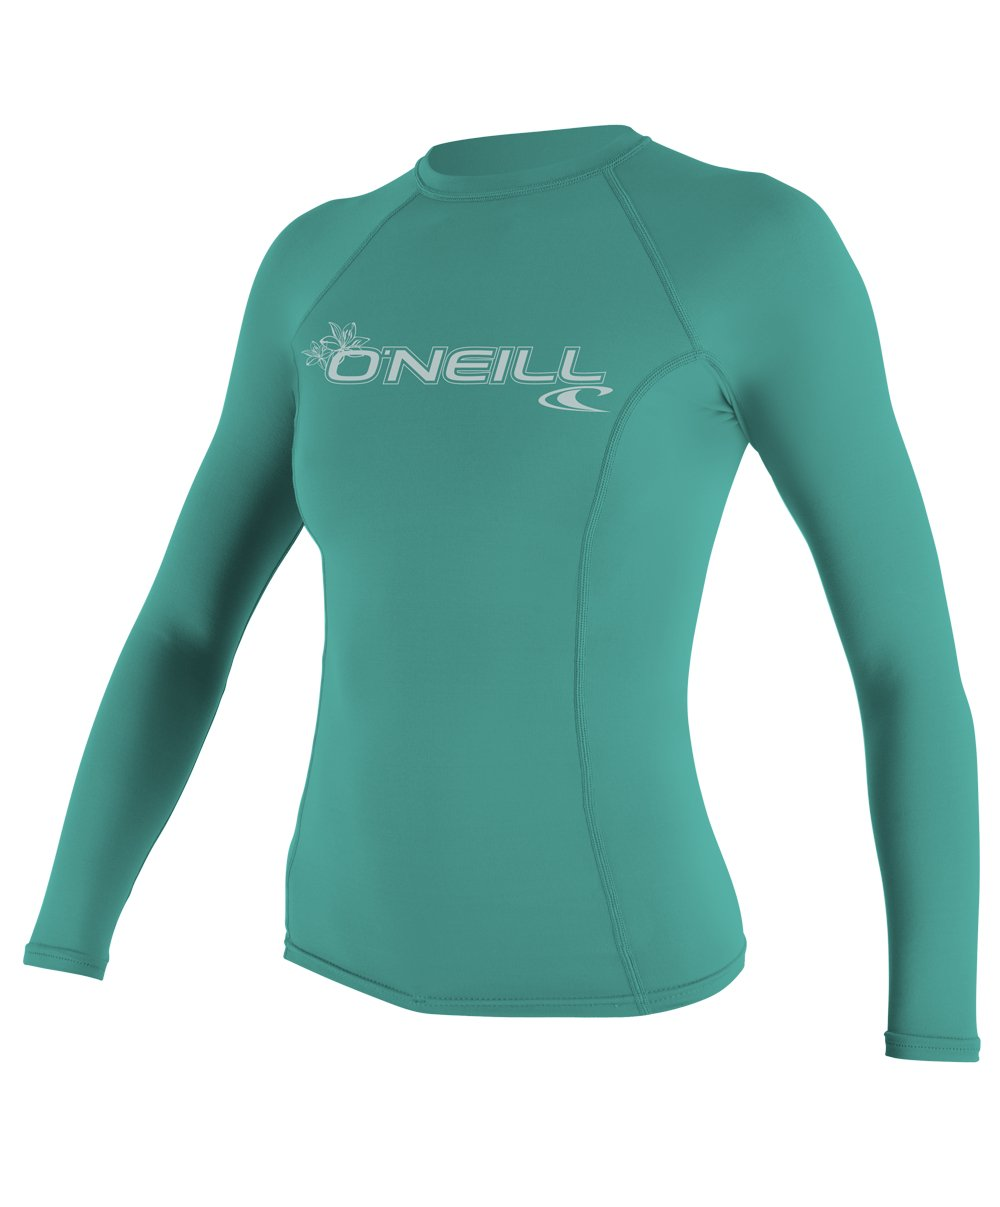 O'Neill Women's Basic Skins UPF 50+ Long Sleeve Rash Guard, Light Aqua, X-Small by O'Neill Wetsuits